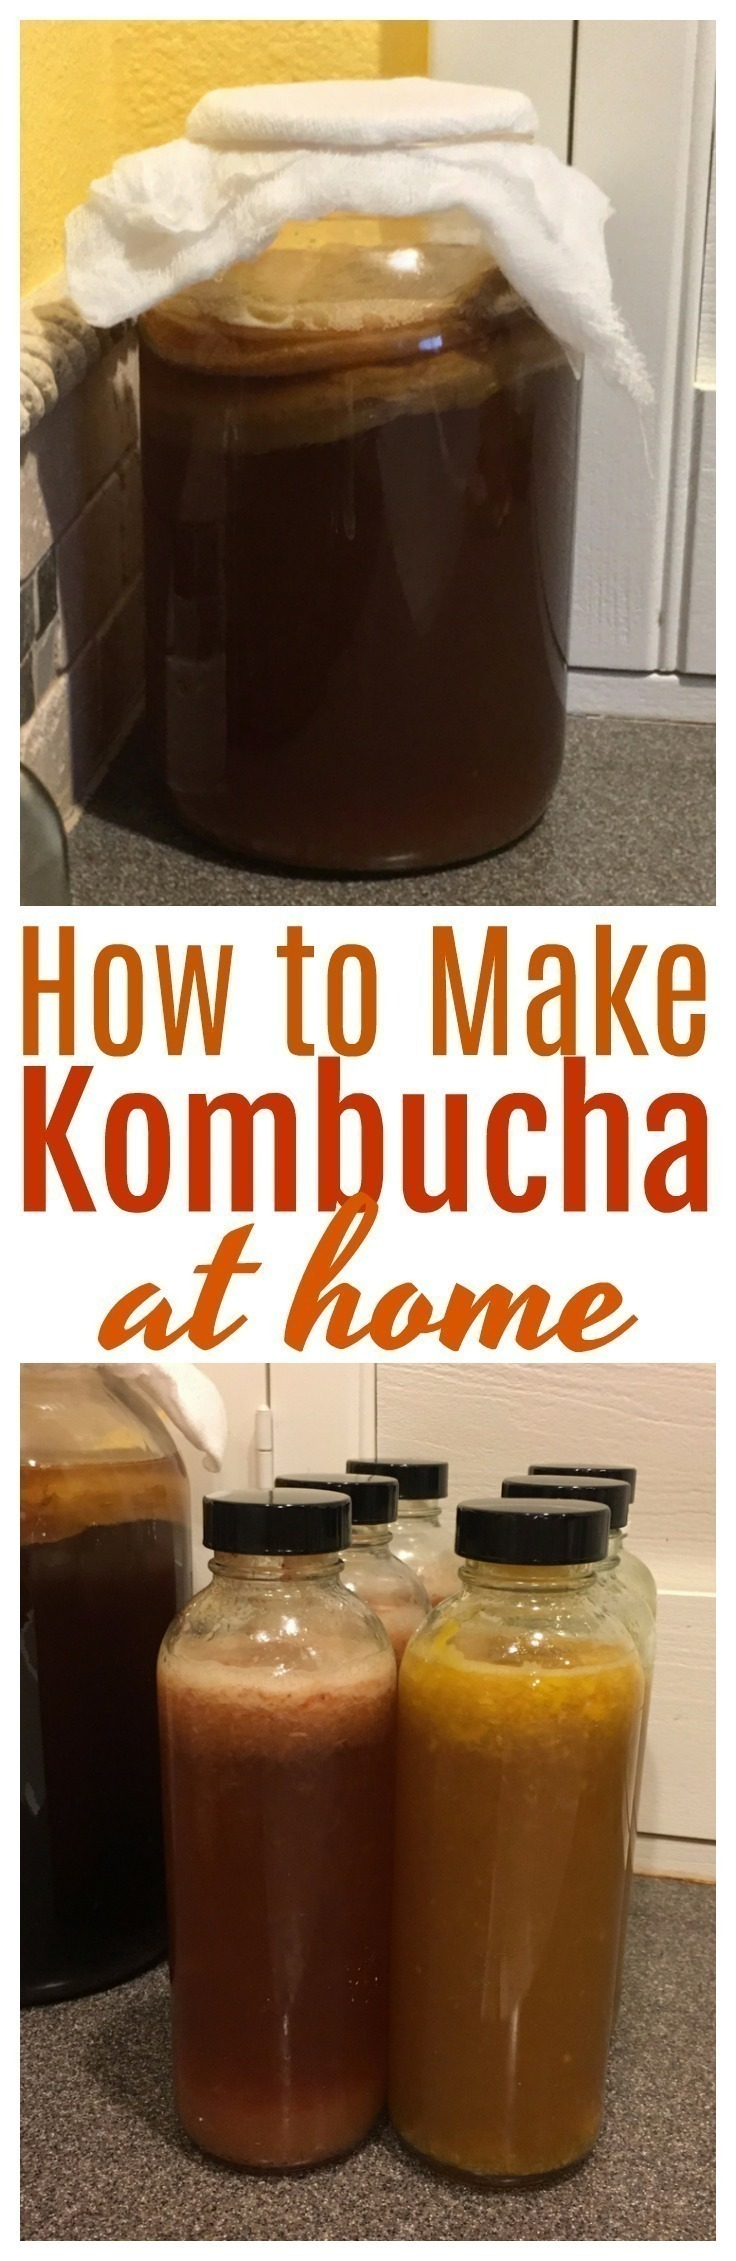 Kombucha is a fermented probiotic beverage of black or green tea and sugar, that can be easily made at home with a tremendous cost savings. #probiotic   #fermented   #kombucha